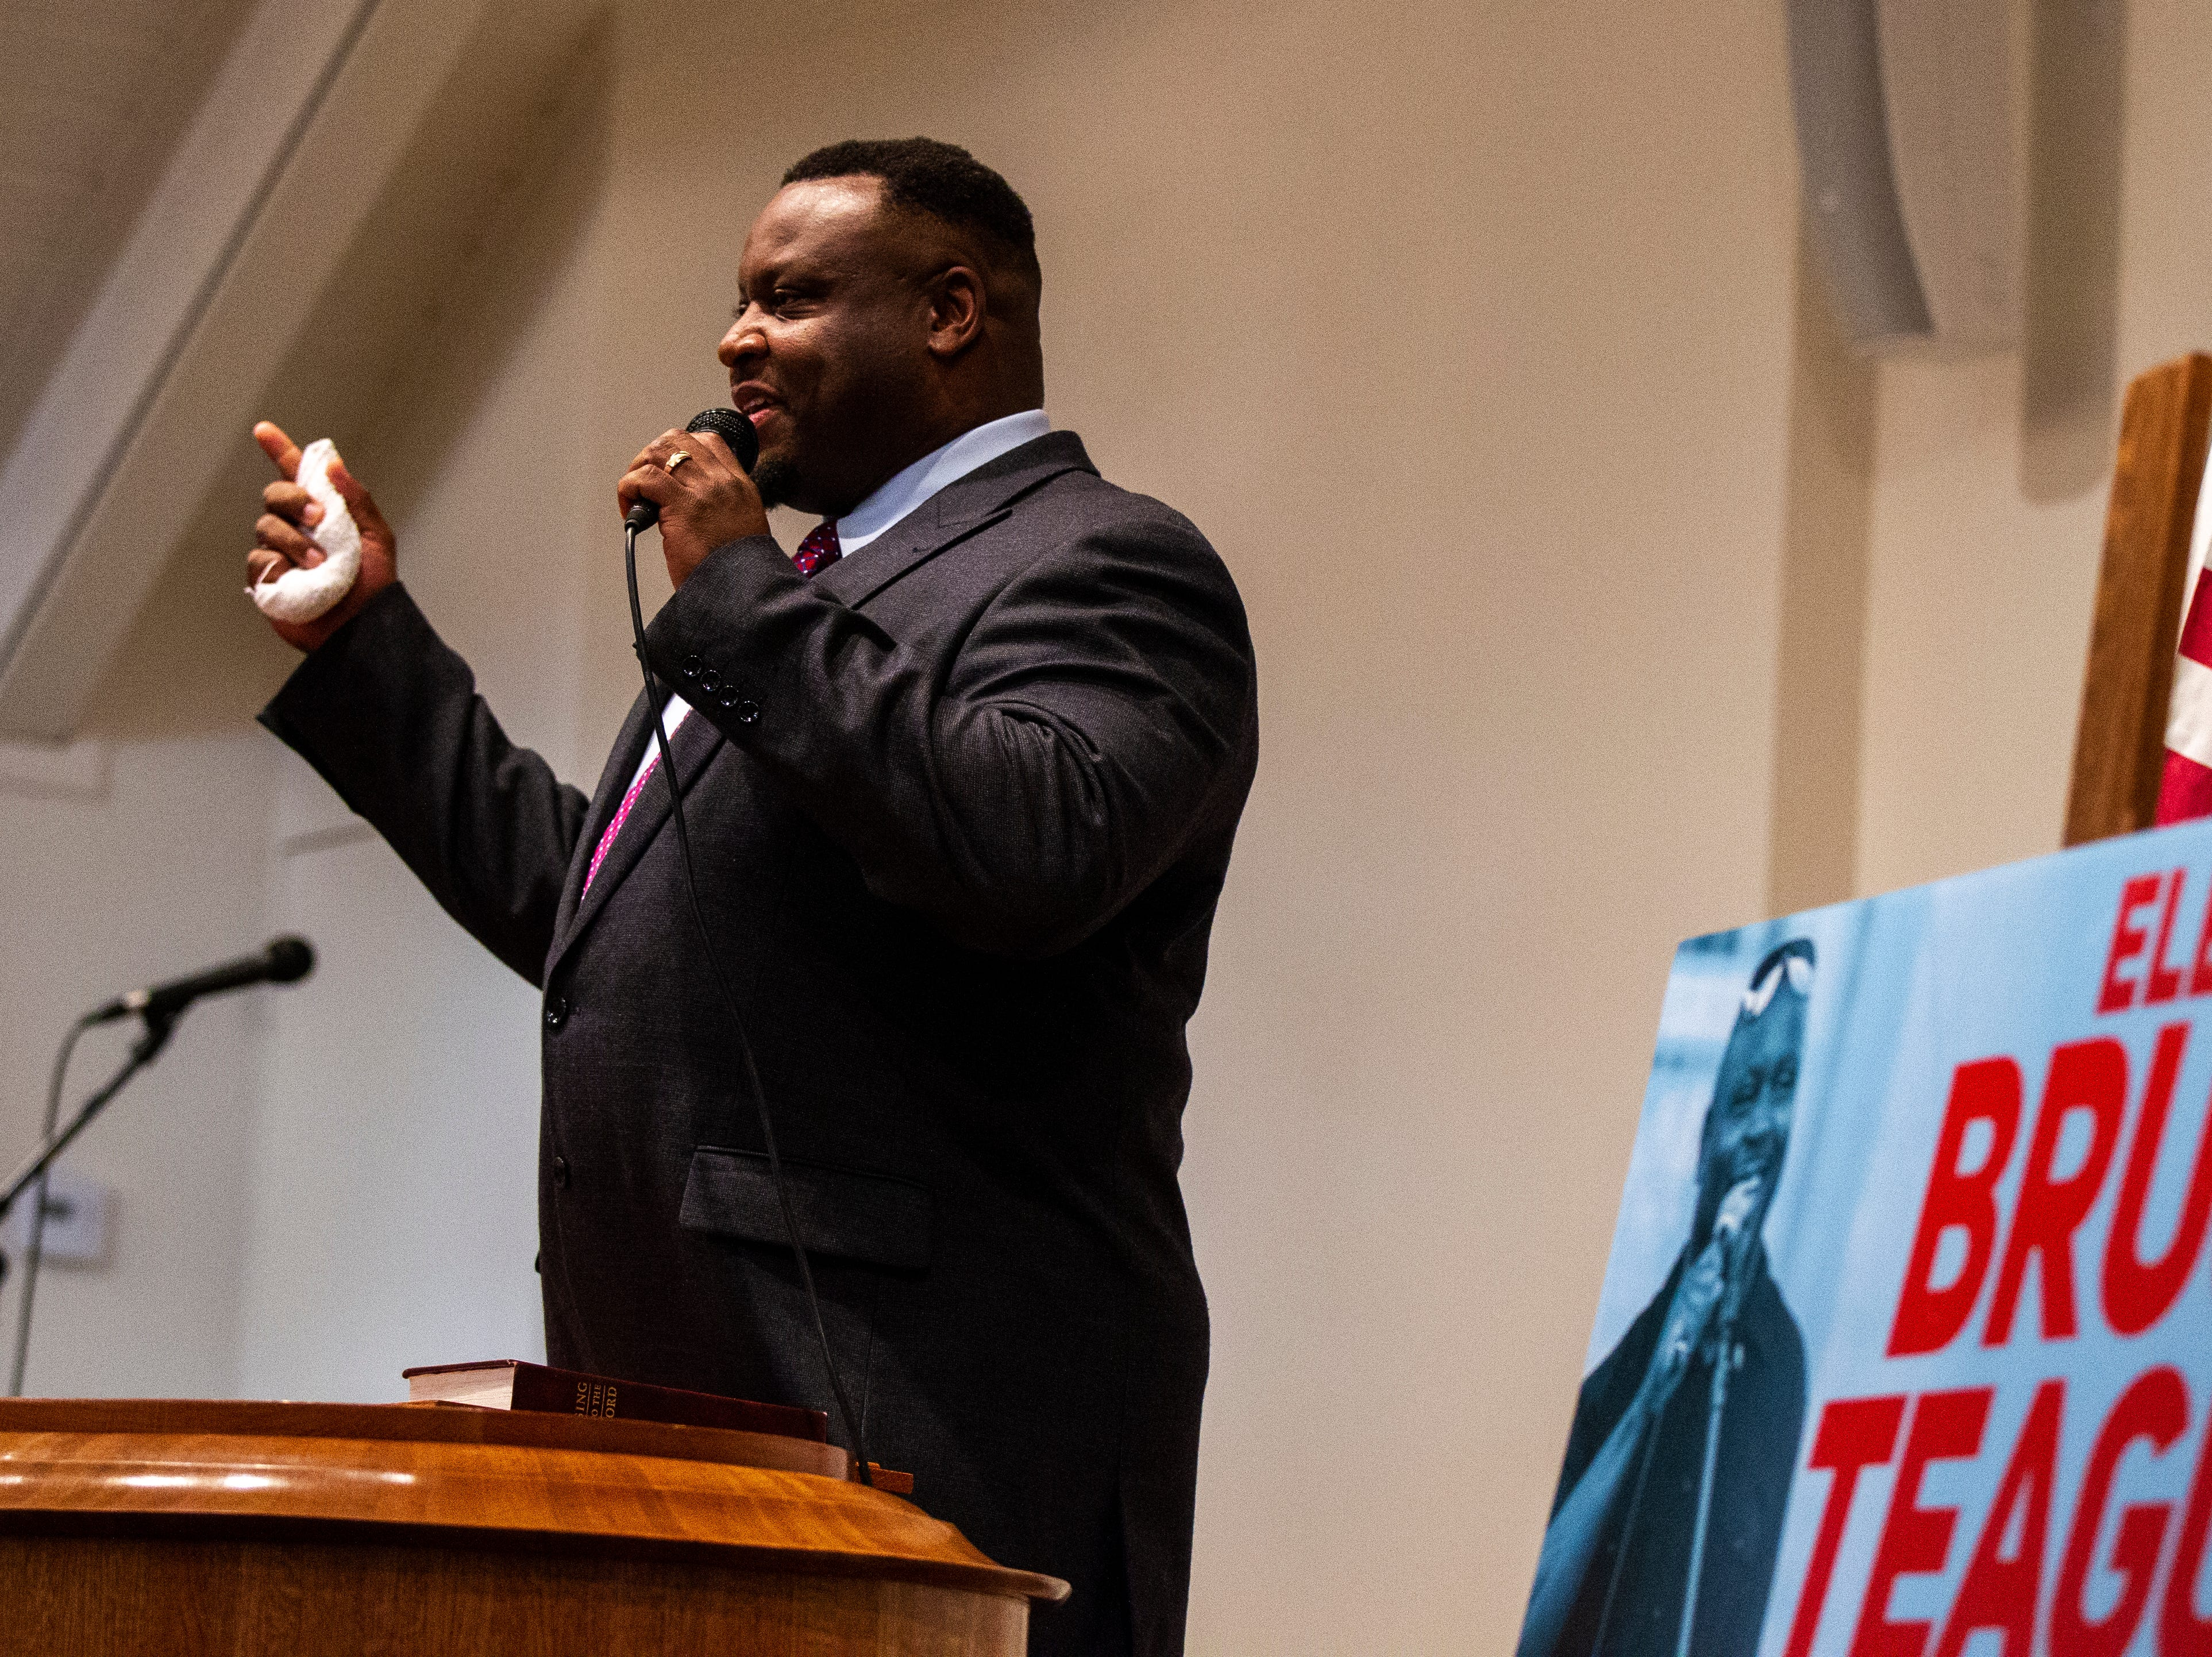 Bruce Teague thanks supporters after his swearing in ceremony for Iowa City council on Saturday, Oct. 13, 2018, at the Church of Nazarene on Wade Street in Iowa City.